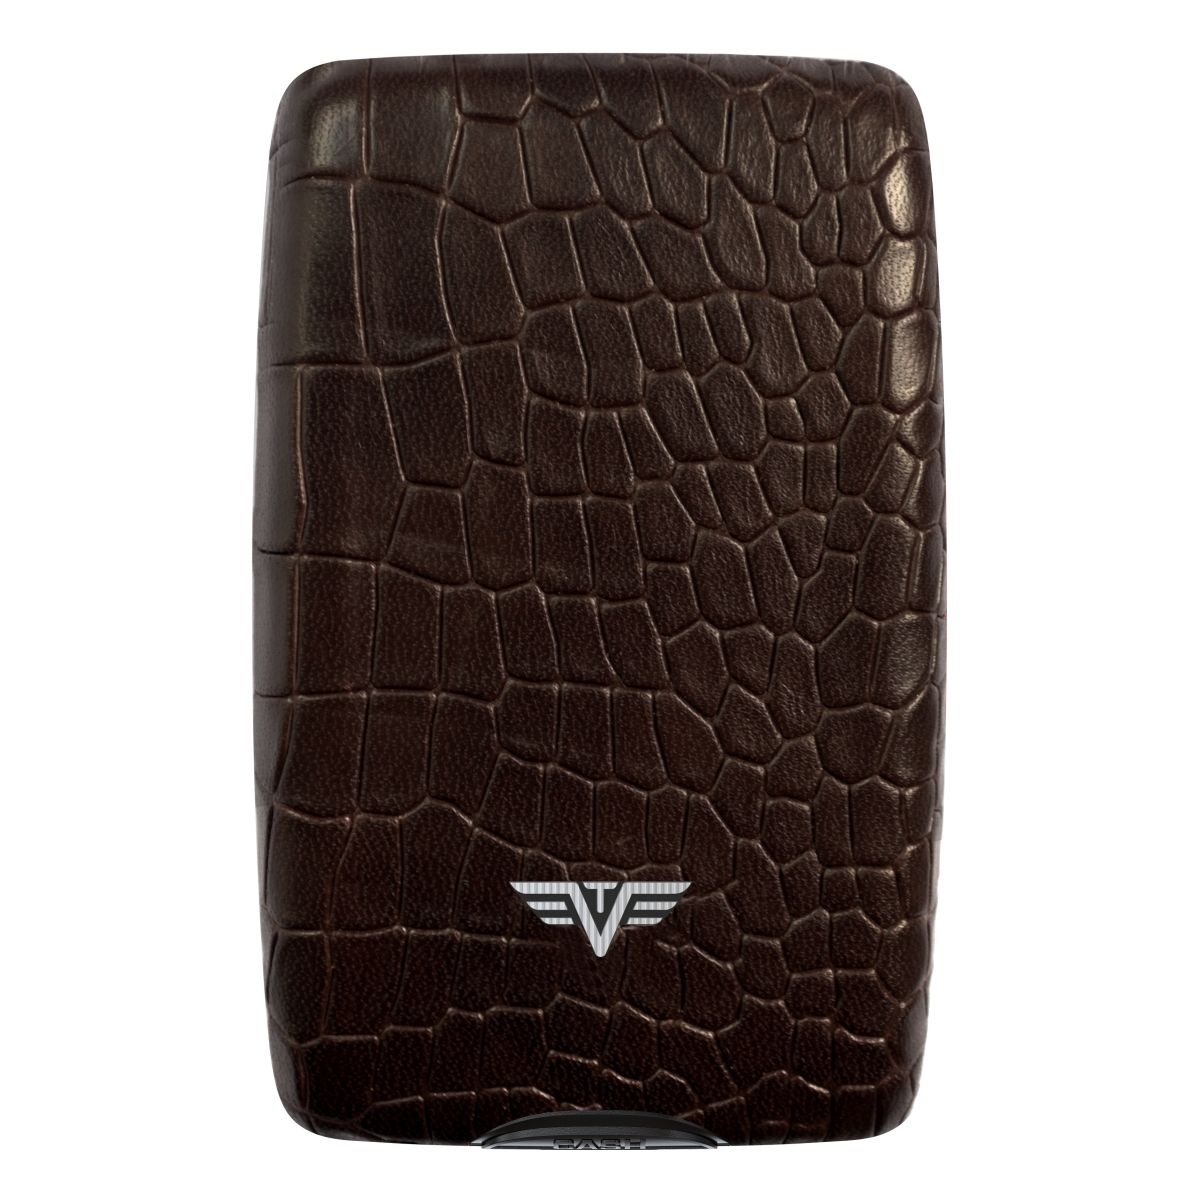 TRU VIRTU Aluminum Wallet Oyster Cash & Cards - Leather Line - Corco Brown